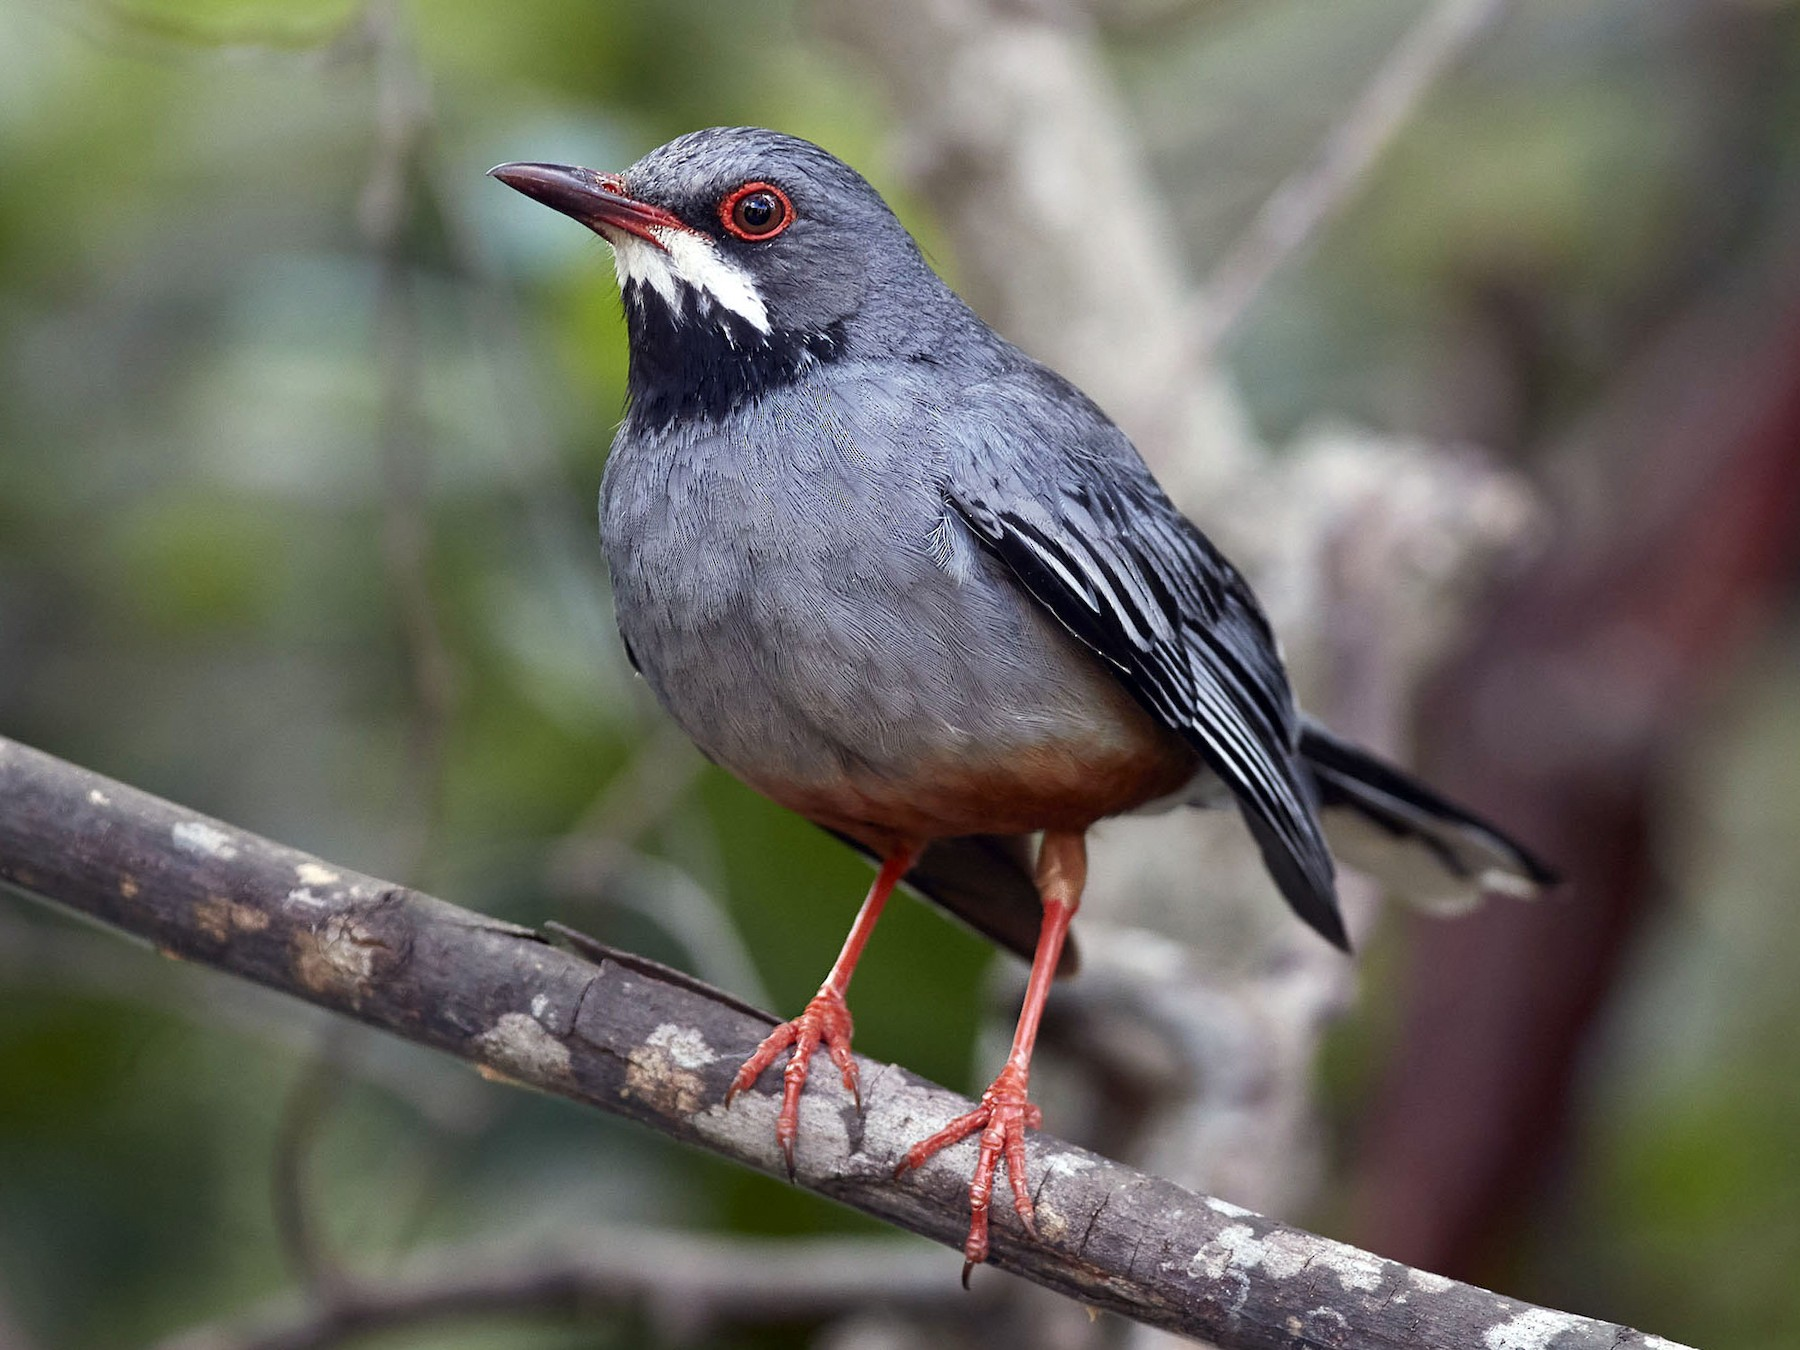 Red-legged Thrush - Arturo Kirkconnell Jr